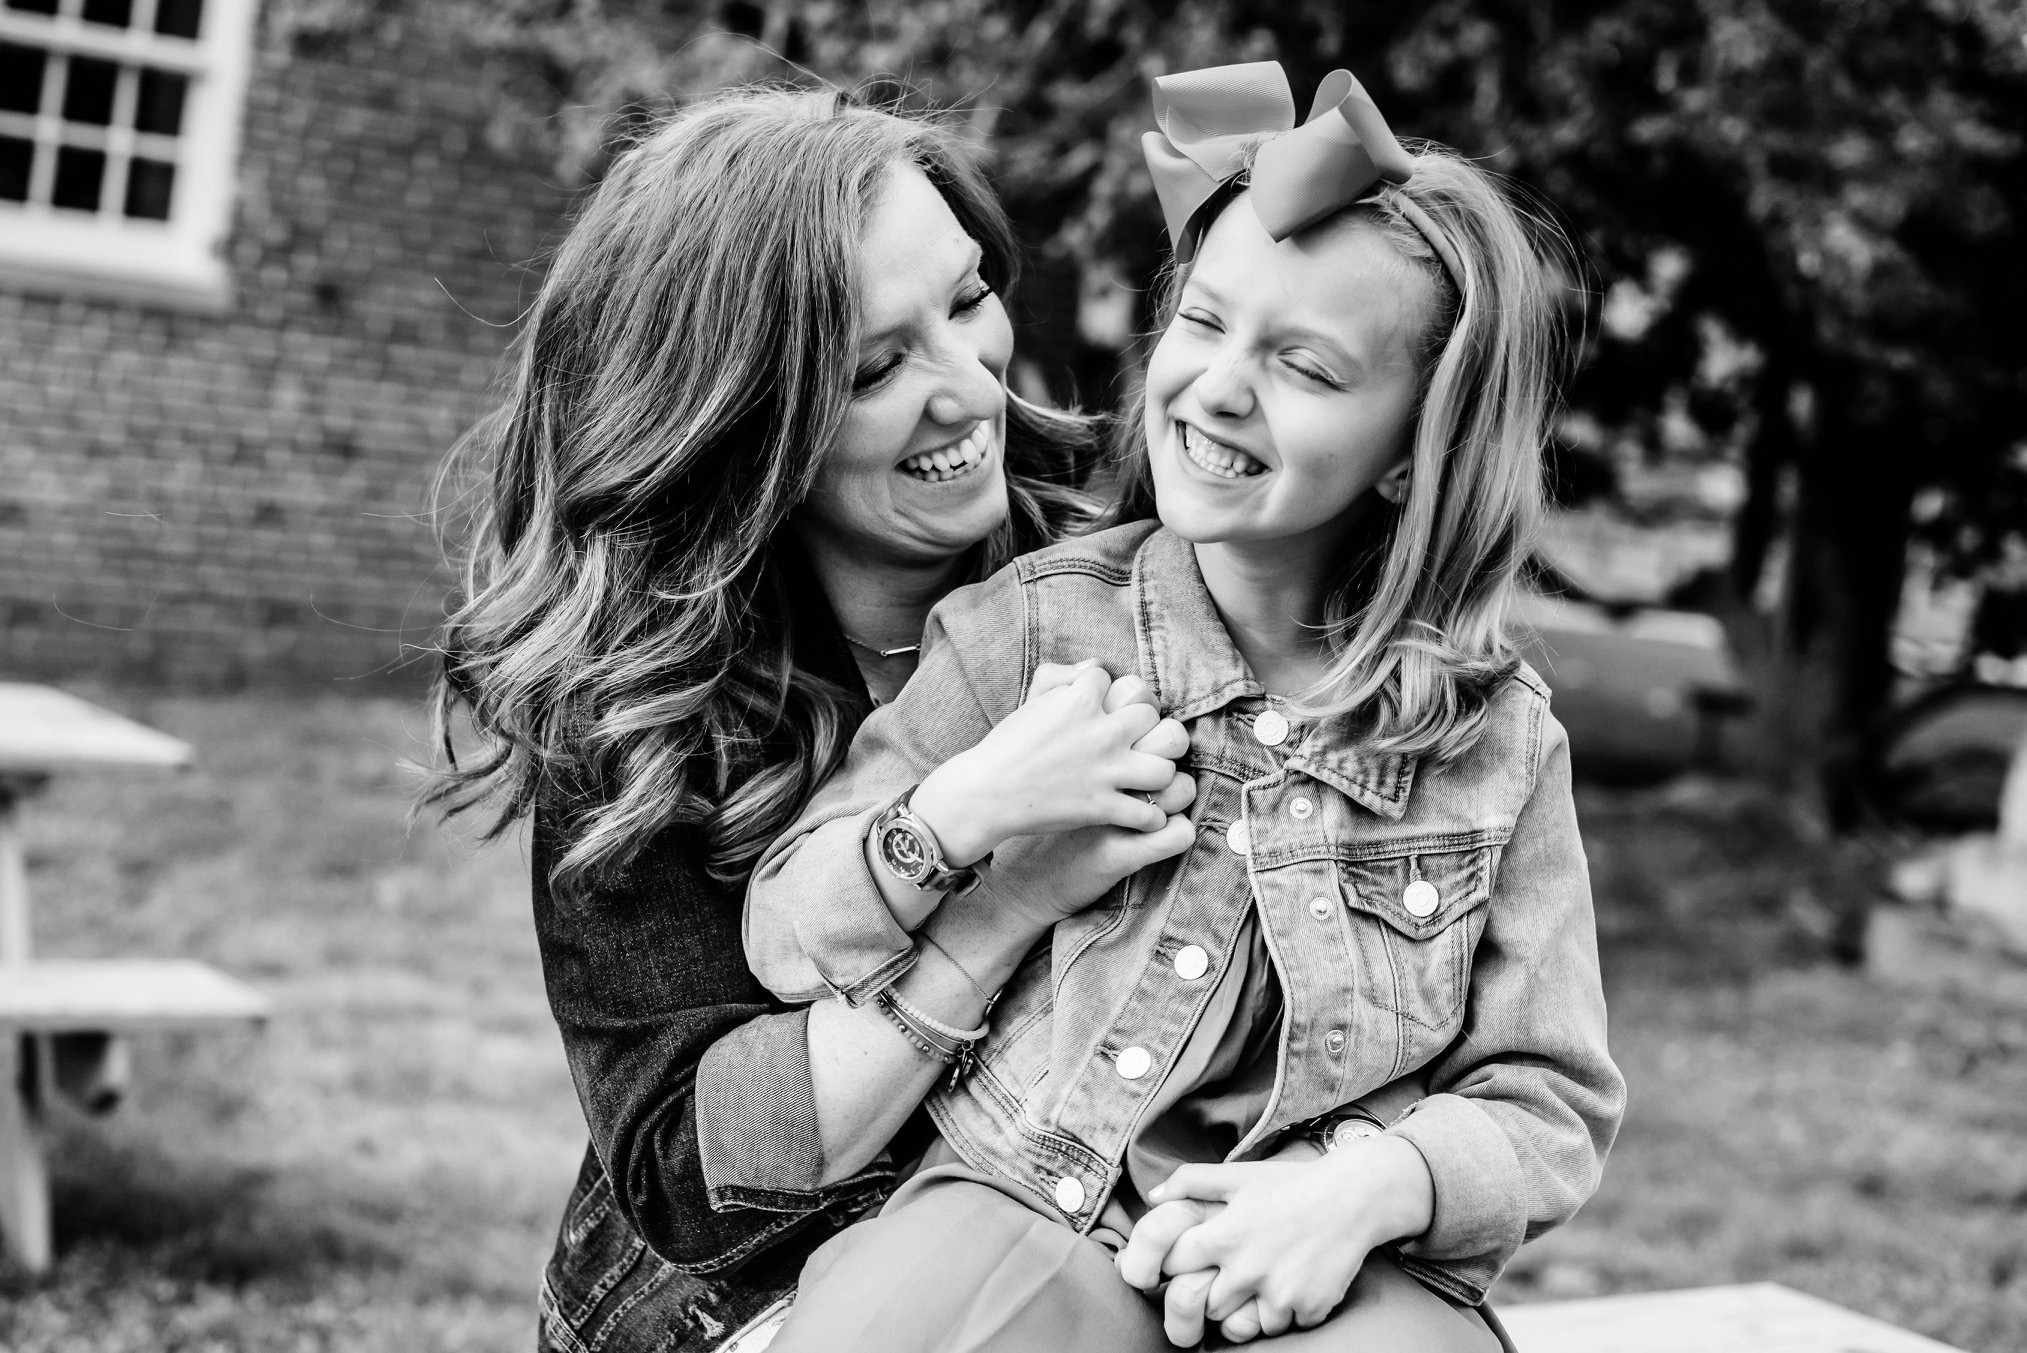 Episode #29: Finding Strength - In this episode, I am thrilled to share a really heartfelt and raw conversation with yet another incredible mom. Caitie is mom to a 7 year old daughter and the cohost of Blackbird:The Podcast, a place that was created to support young people through grief and loss. Caitie is no stranger to trials in life… but as you'll hear from our conversation she maintains a hilarious sense of humor and a huge open heart. Listen in as Caitie shares the importance of community and how to find strength even in the most trying times.